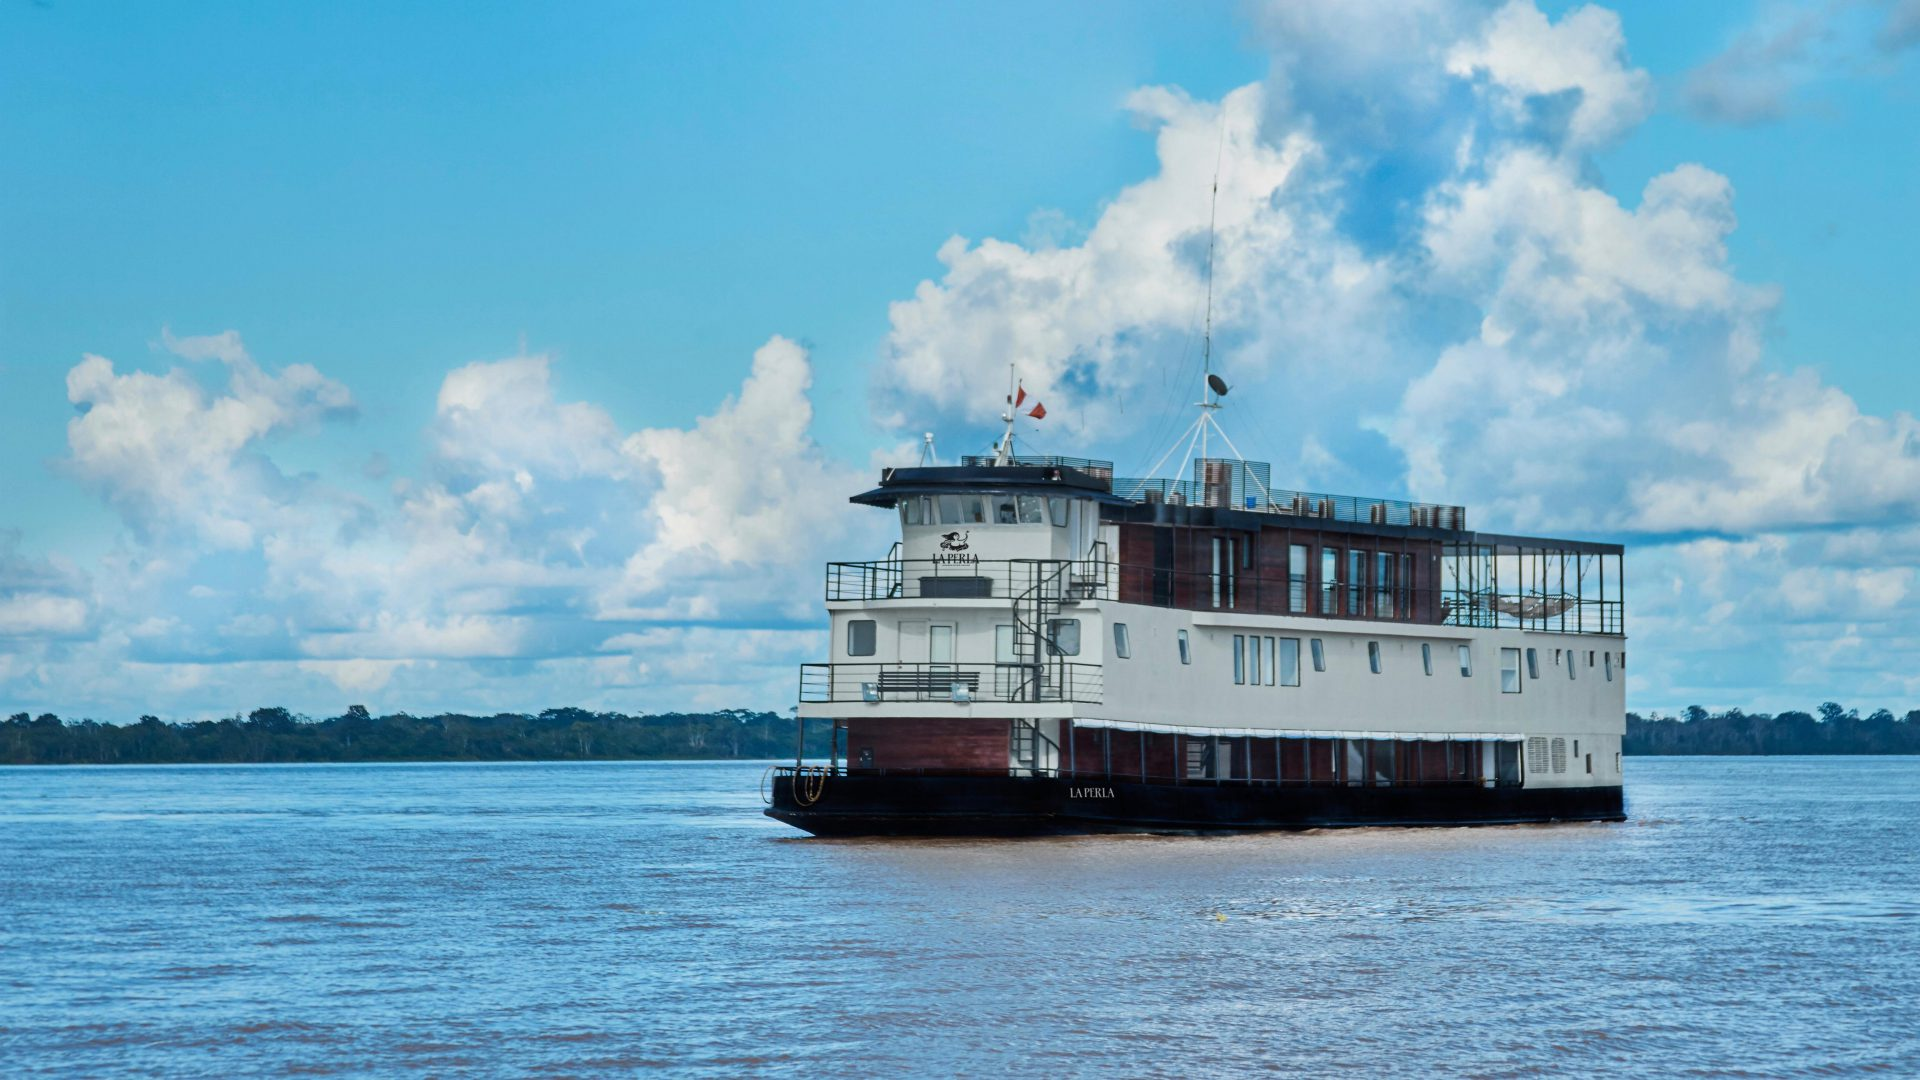 amazon cruise ship La Perla